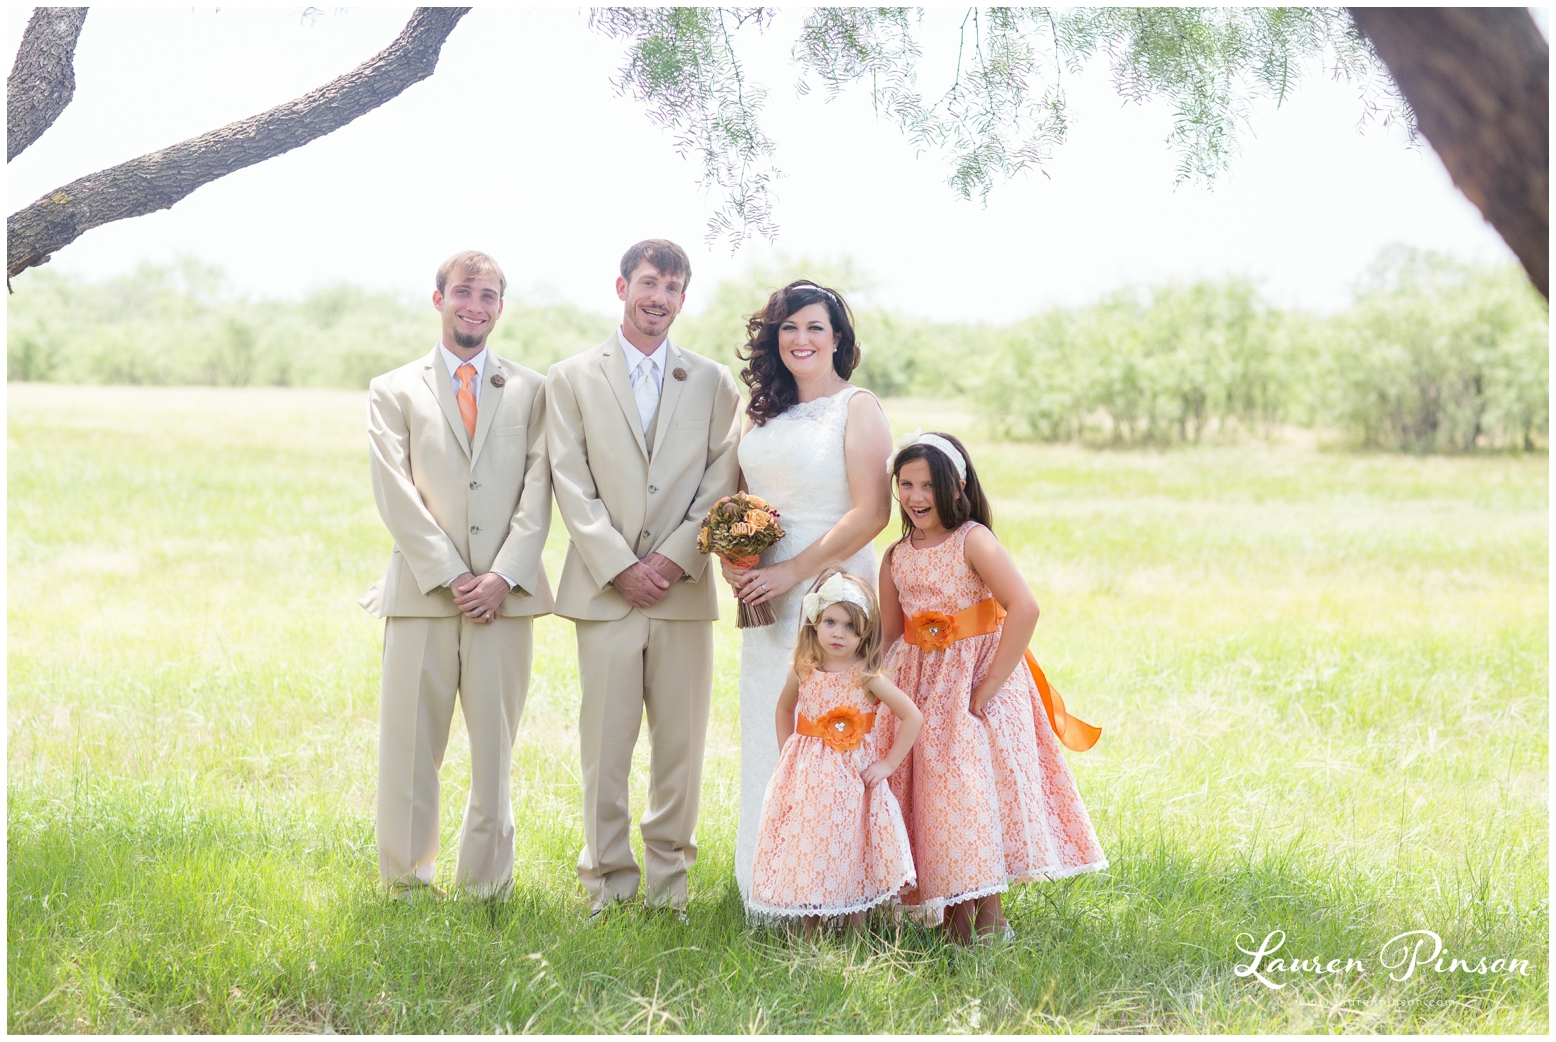 wichita-falls-coyote-ranch-resort-wedding-texas-photography-family-ceremony-balloons-rustic-lace_0313.jpg